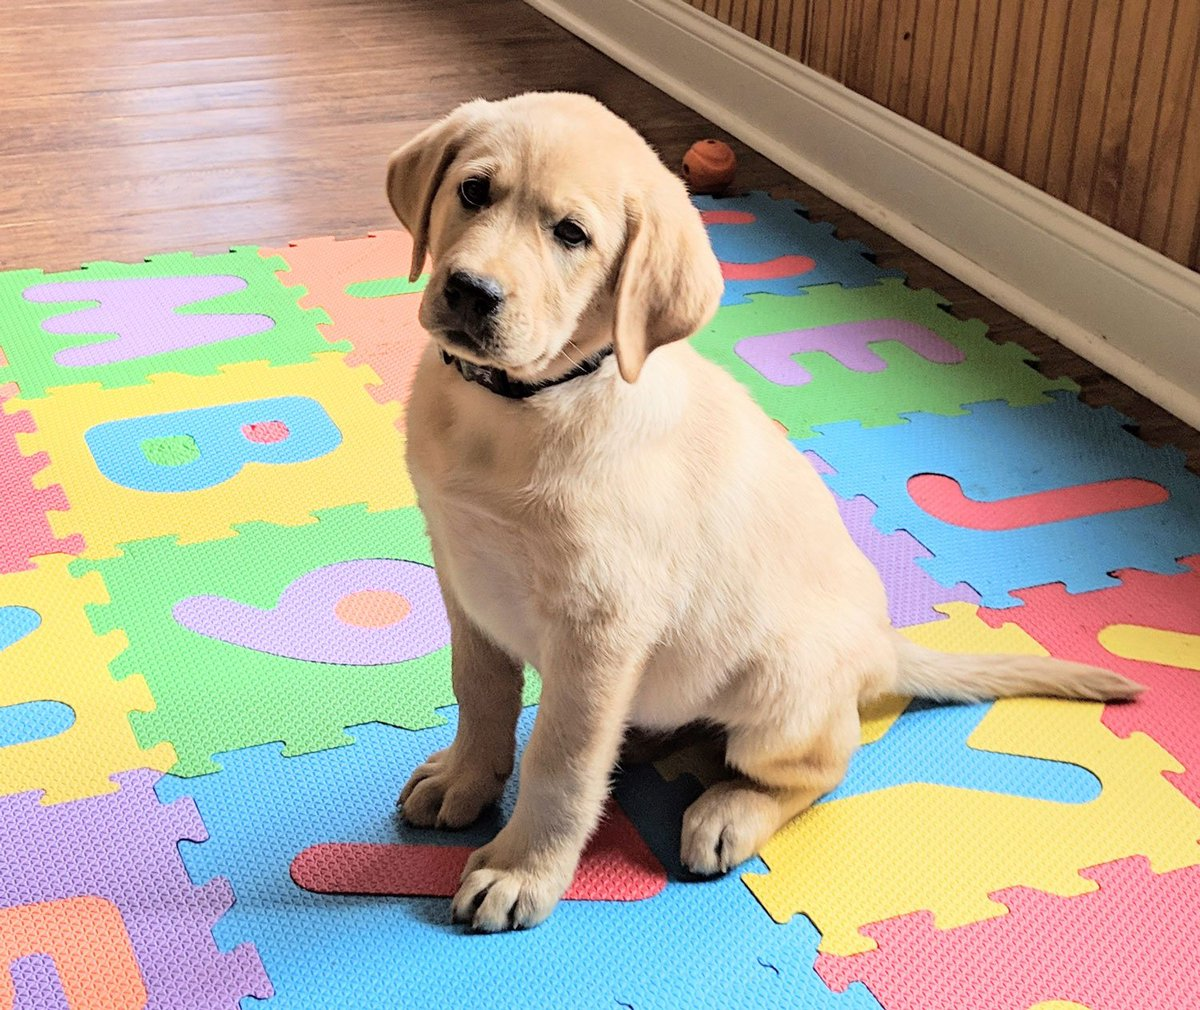 Big news! We're working with Project2Heal to help train a service dog for someone in need. This adorable puppy will be at some of our practices and games this season.